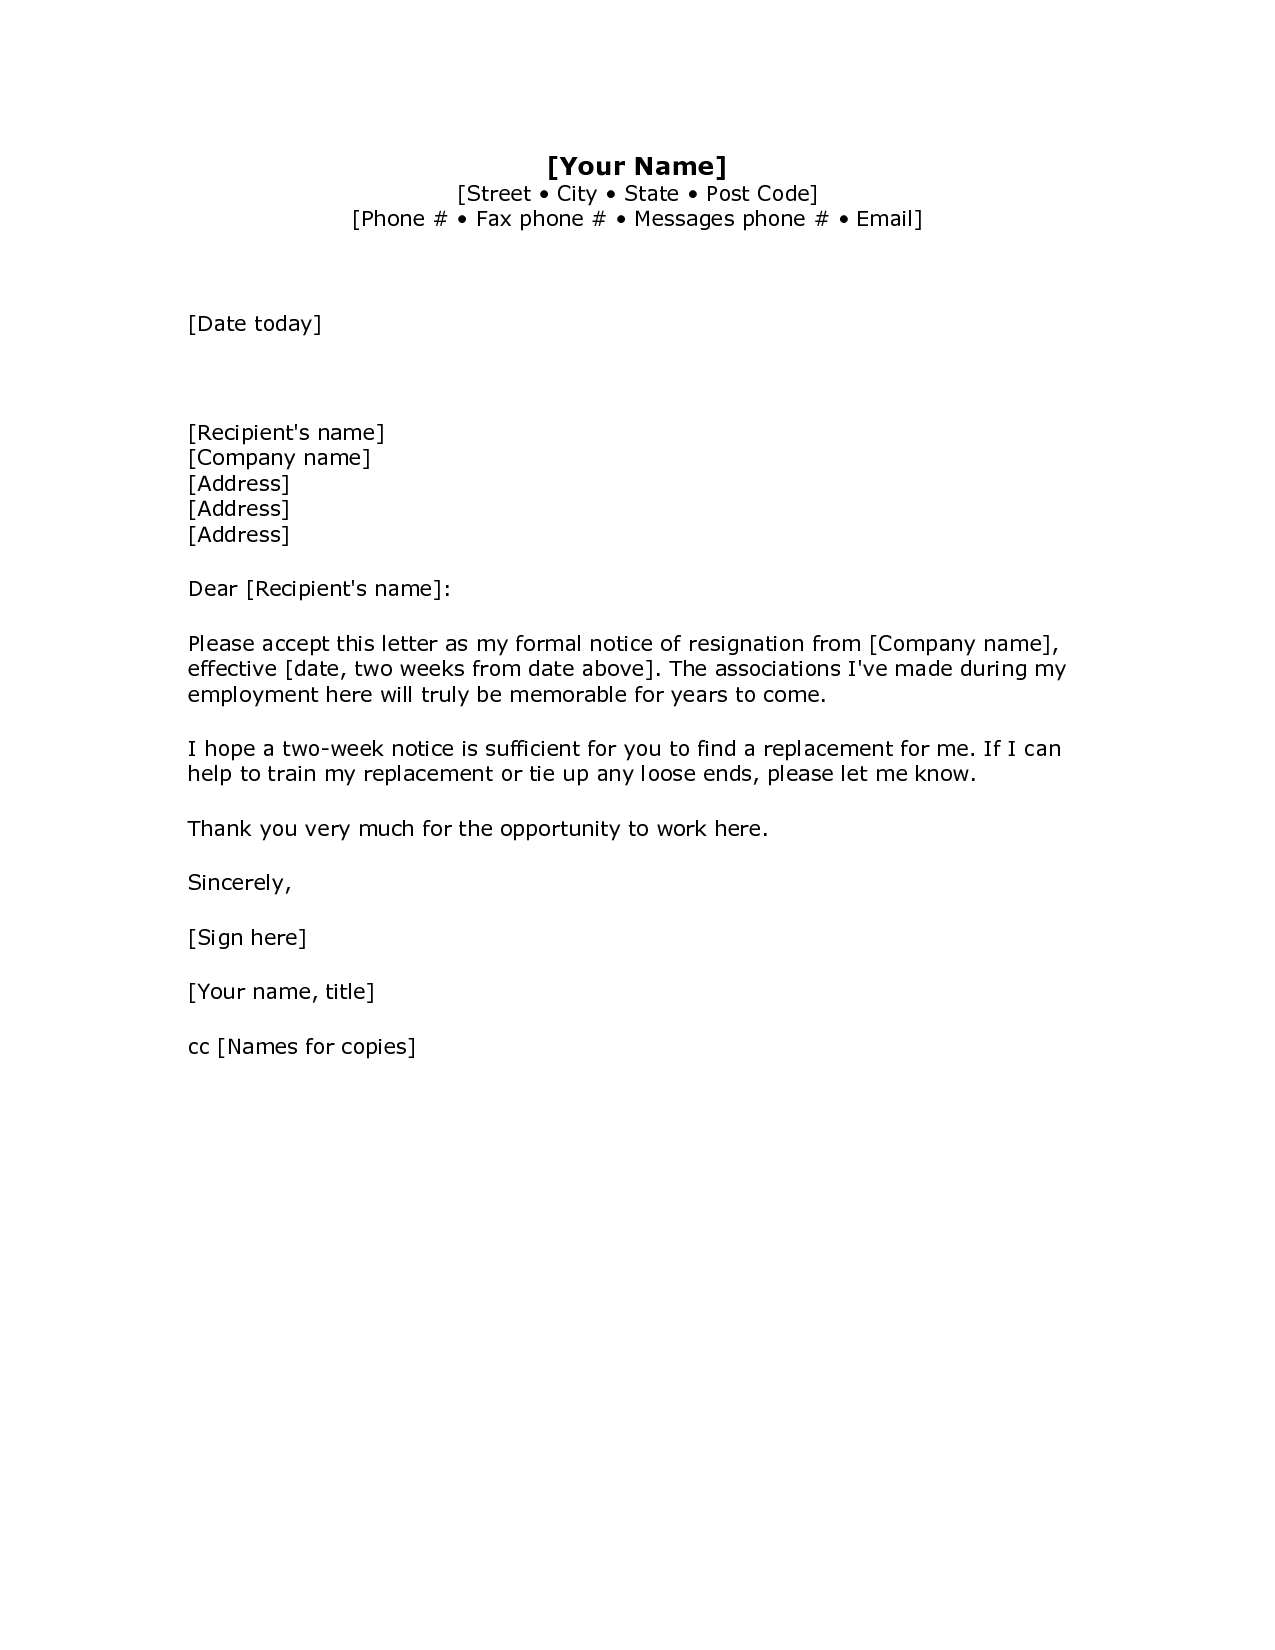 2 Weeks Notice Letter Resignation Letter Week Notice Words For Two Week Notice Template Word